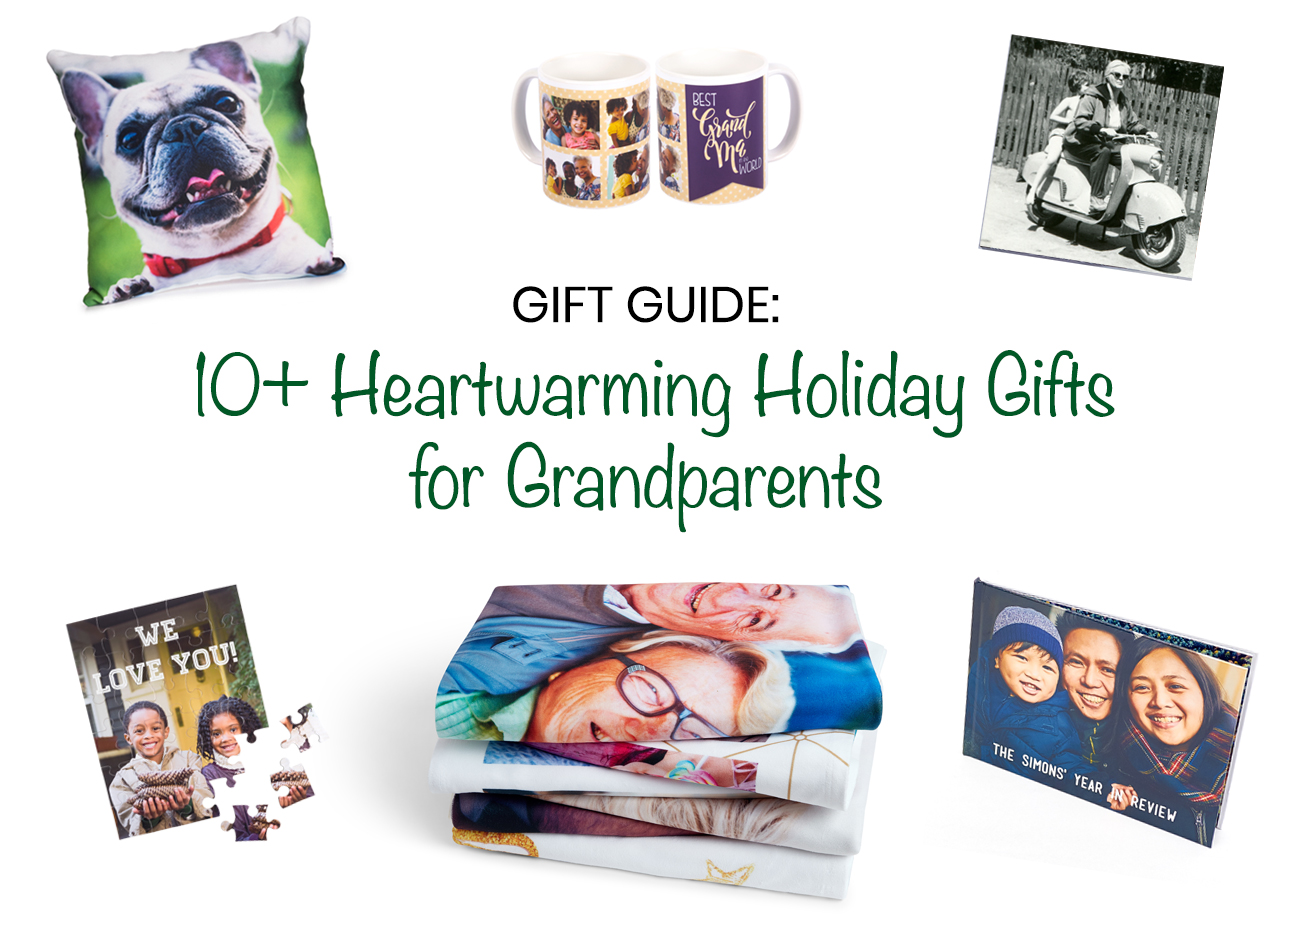 Gift Guide: Holiday Gifts for Grandparents